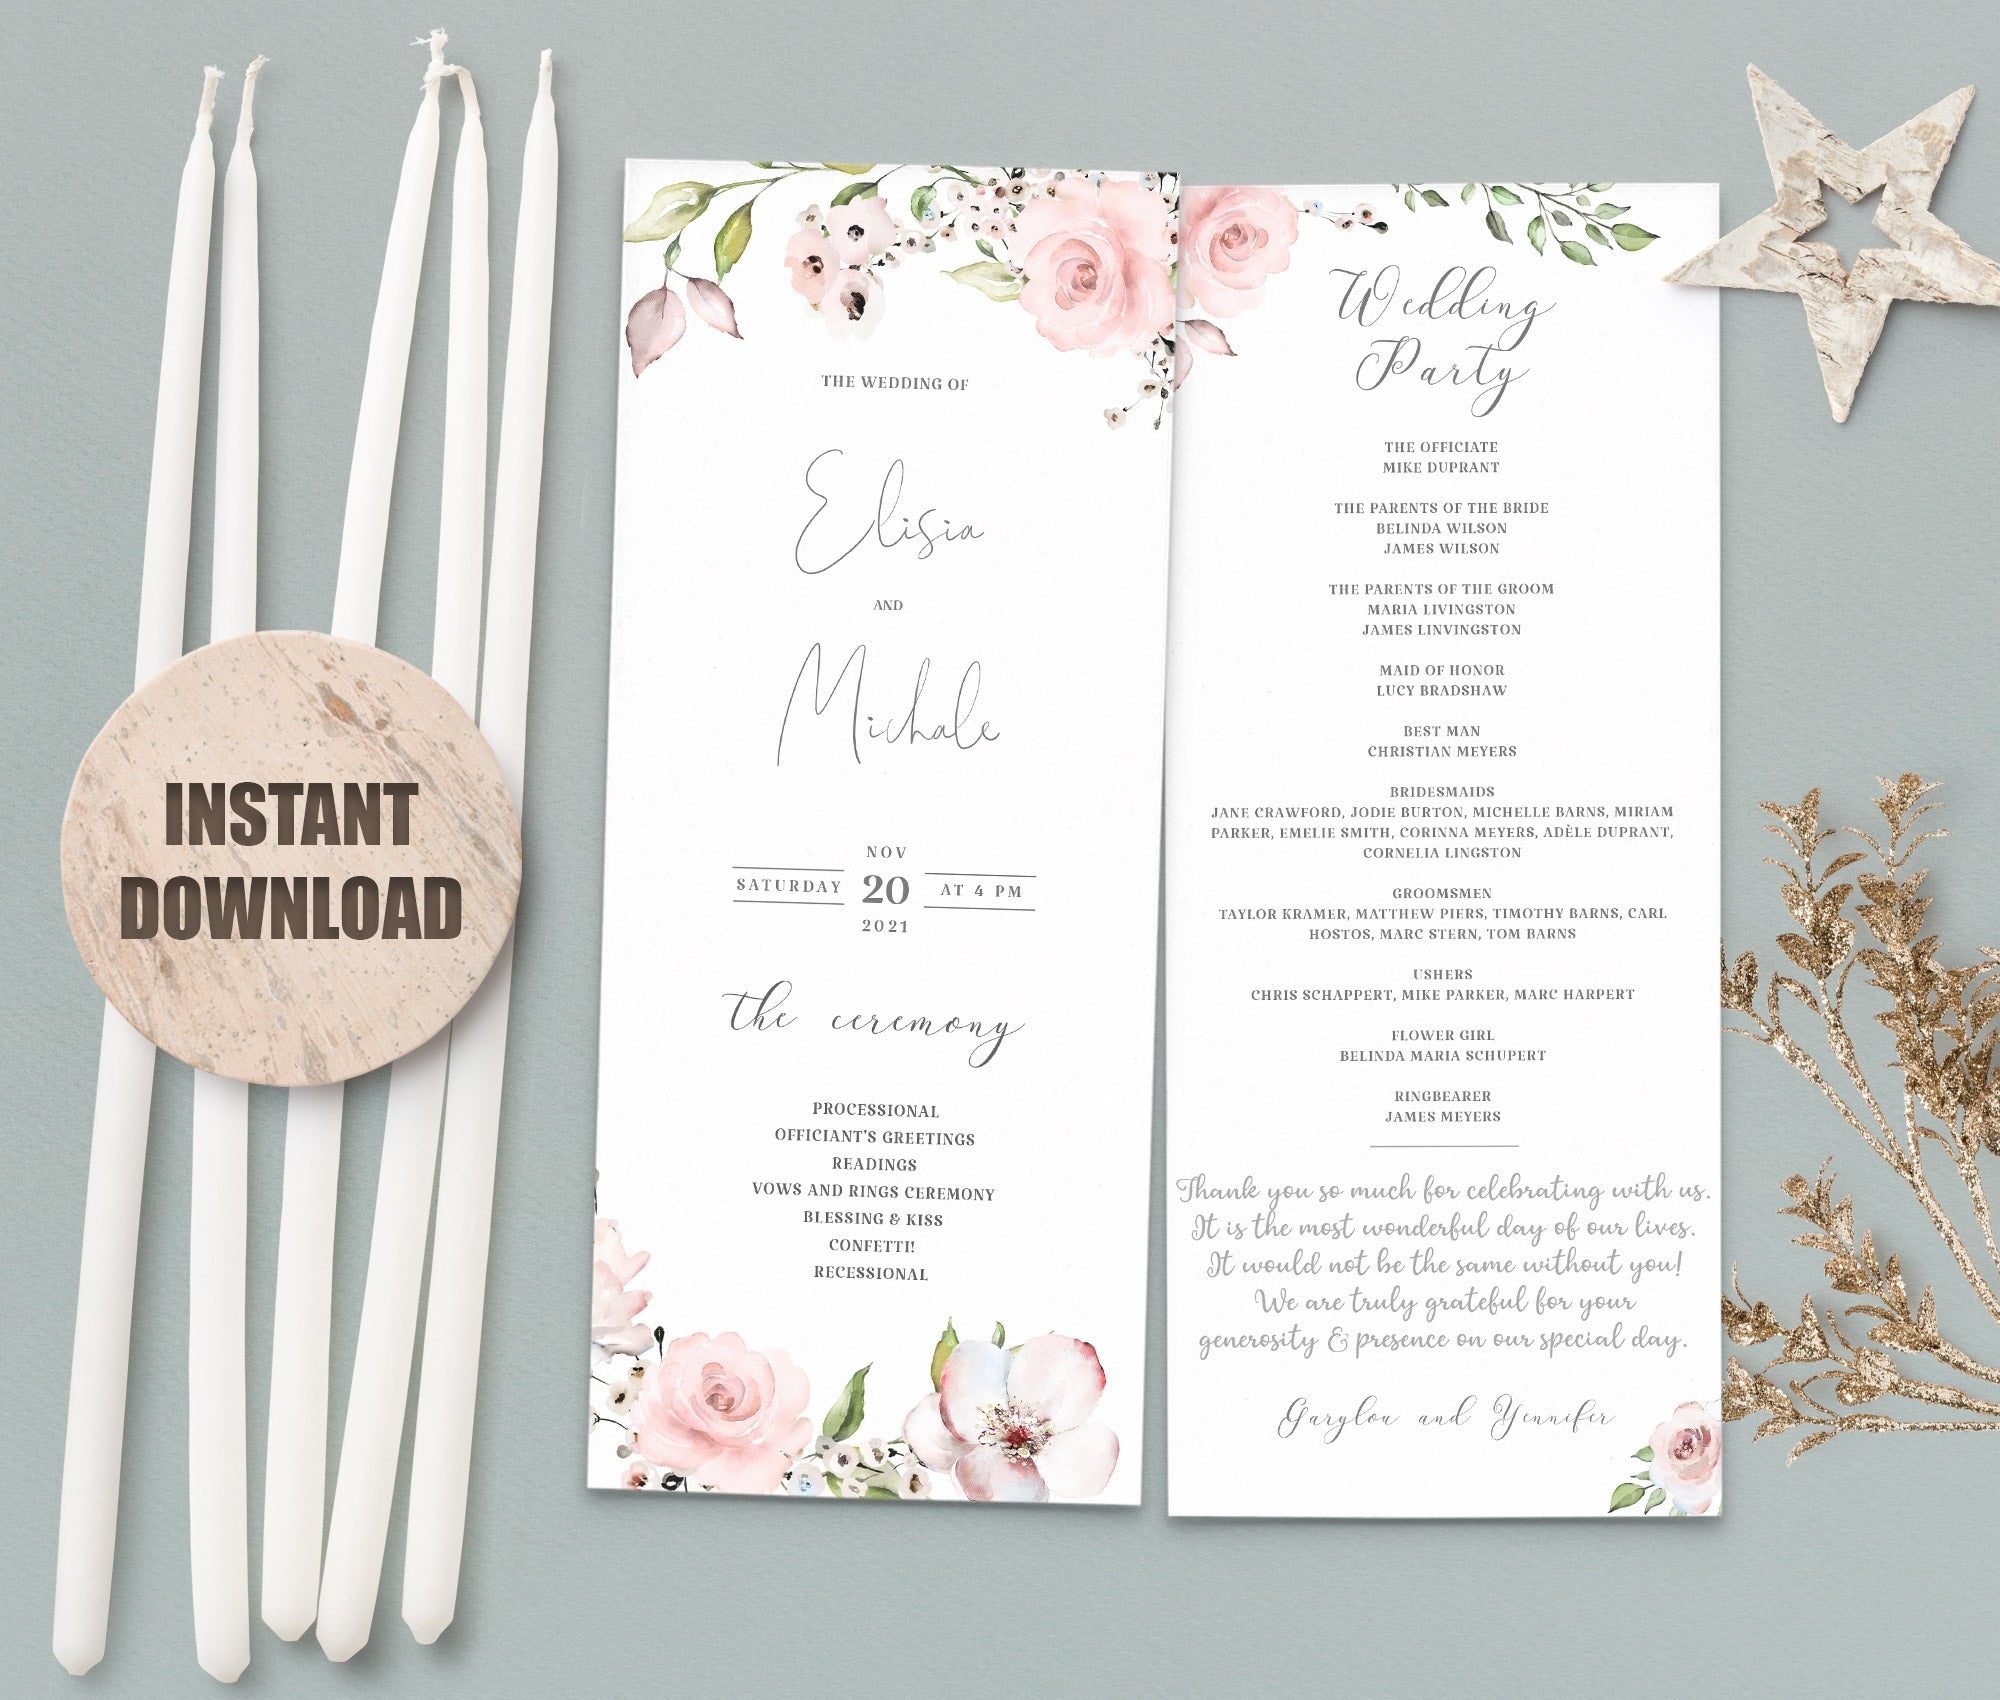 LOVAL Wedding Program set 1